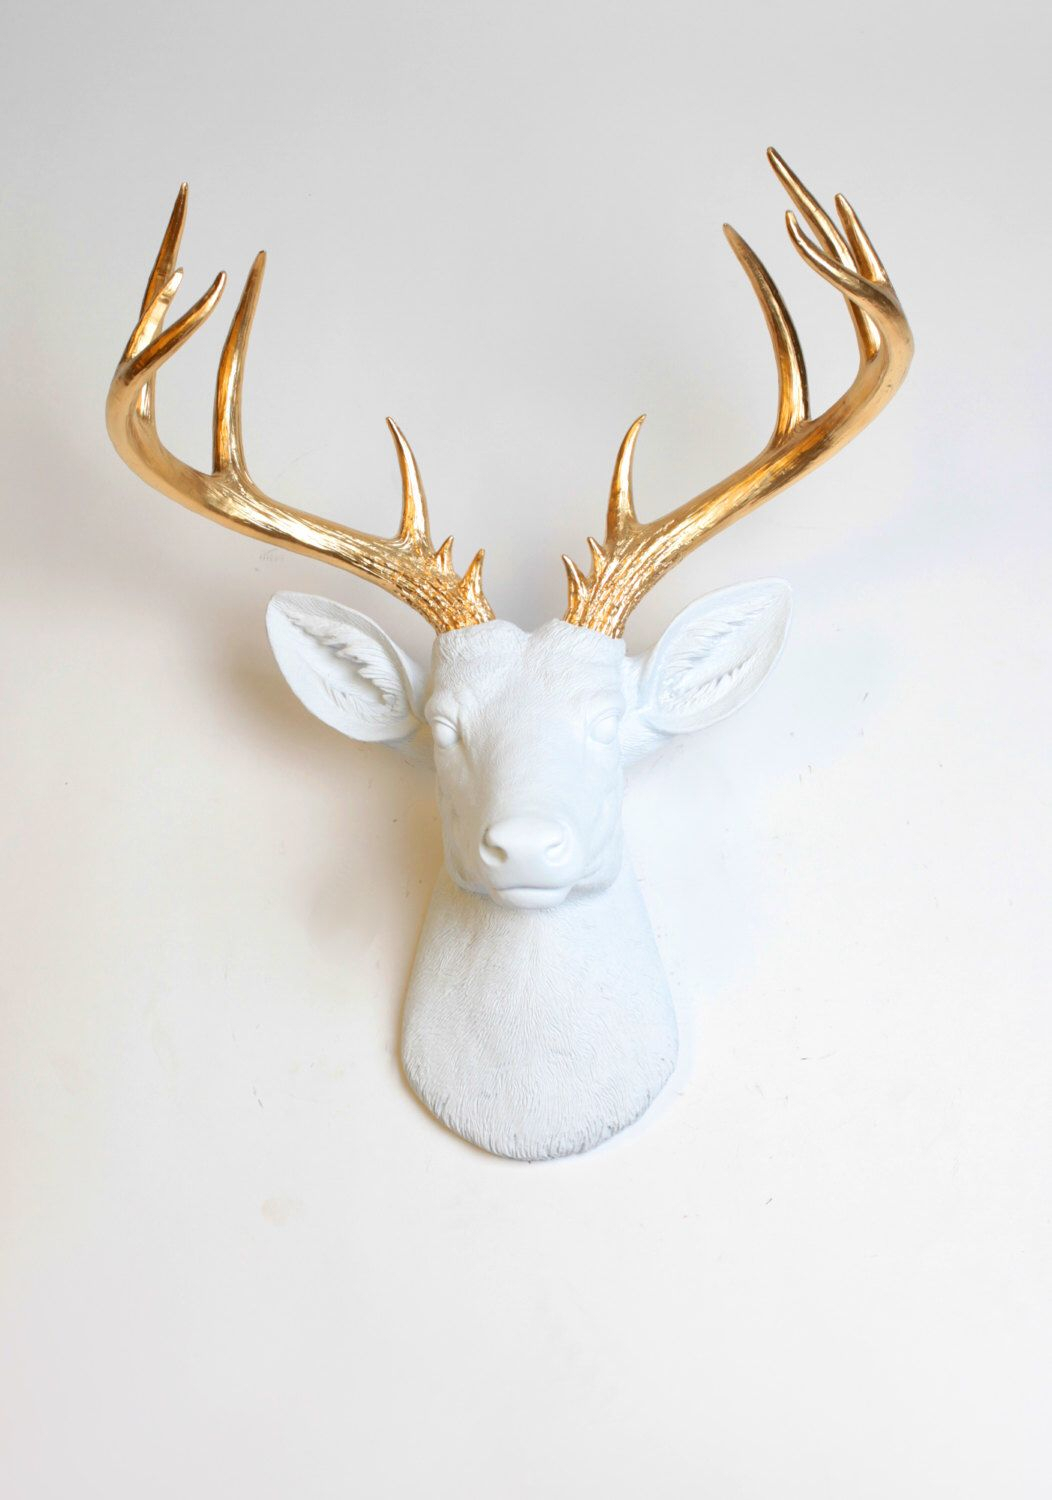 Popular Large Deer Head Faux Taxidermy Wall Decor Pertaining To Deer Head Wall Mount Decor – The Xl Alfred – White And Gold Deer (View 7 of 20)